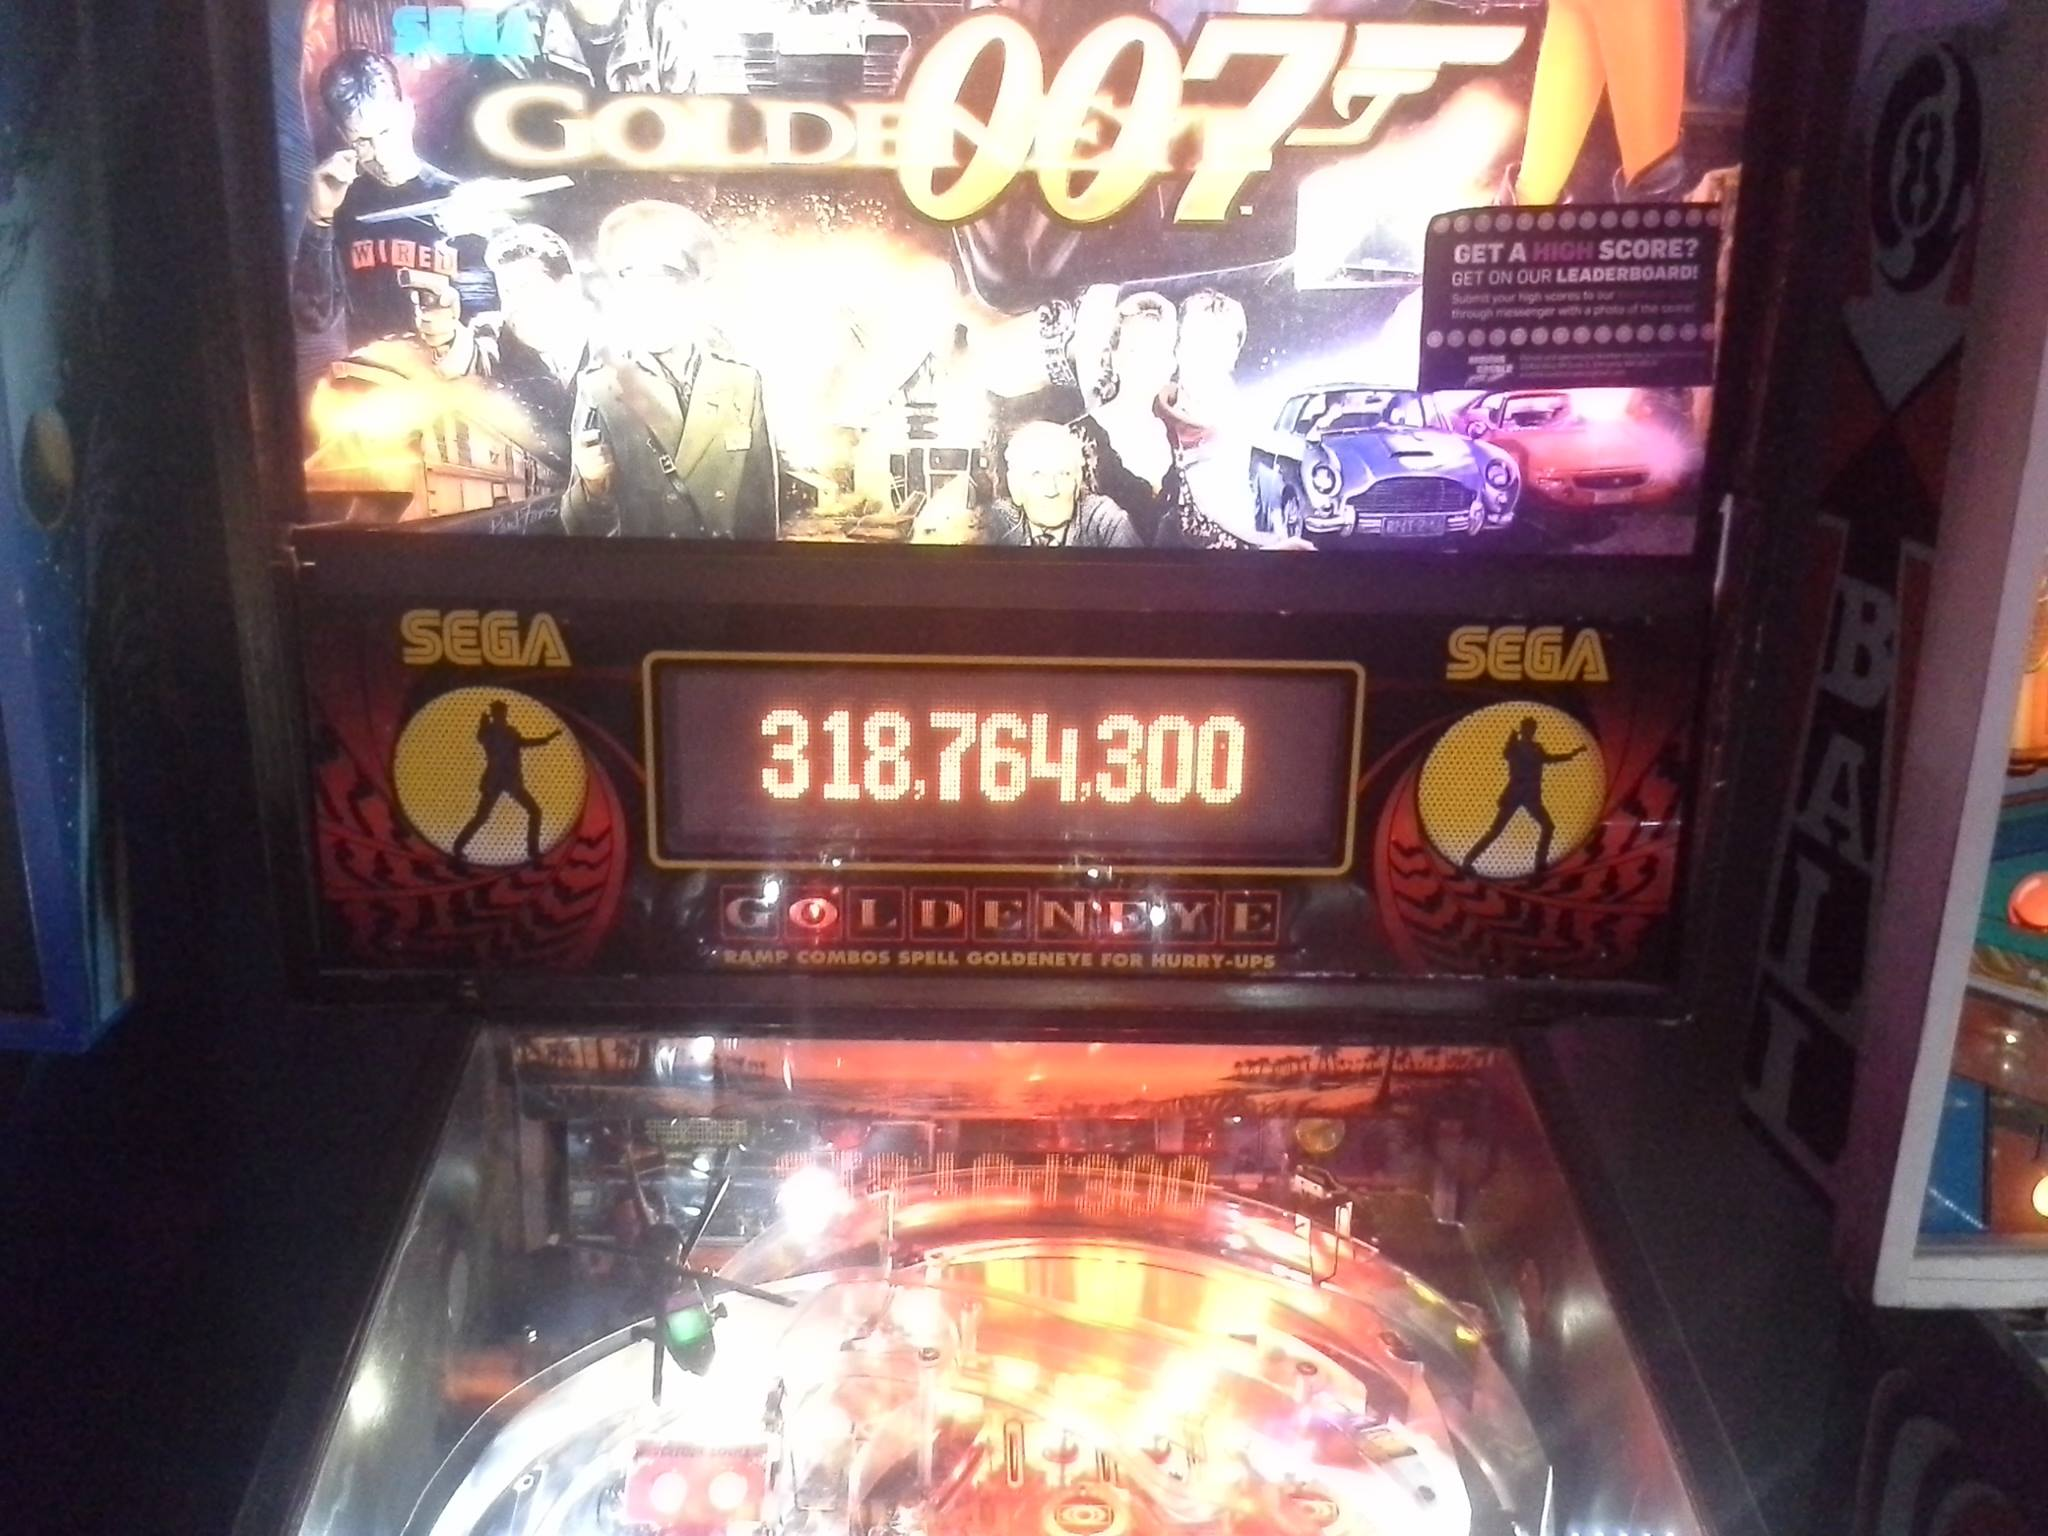 GoldenEye 318,764,300 points